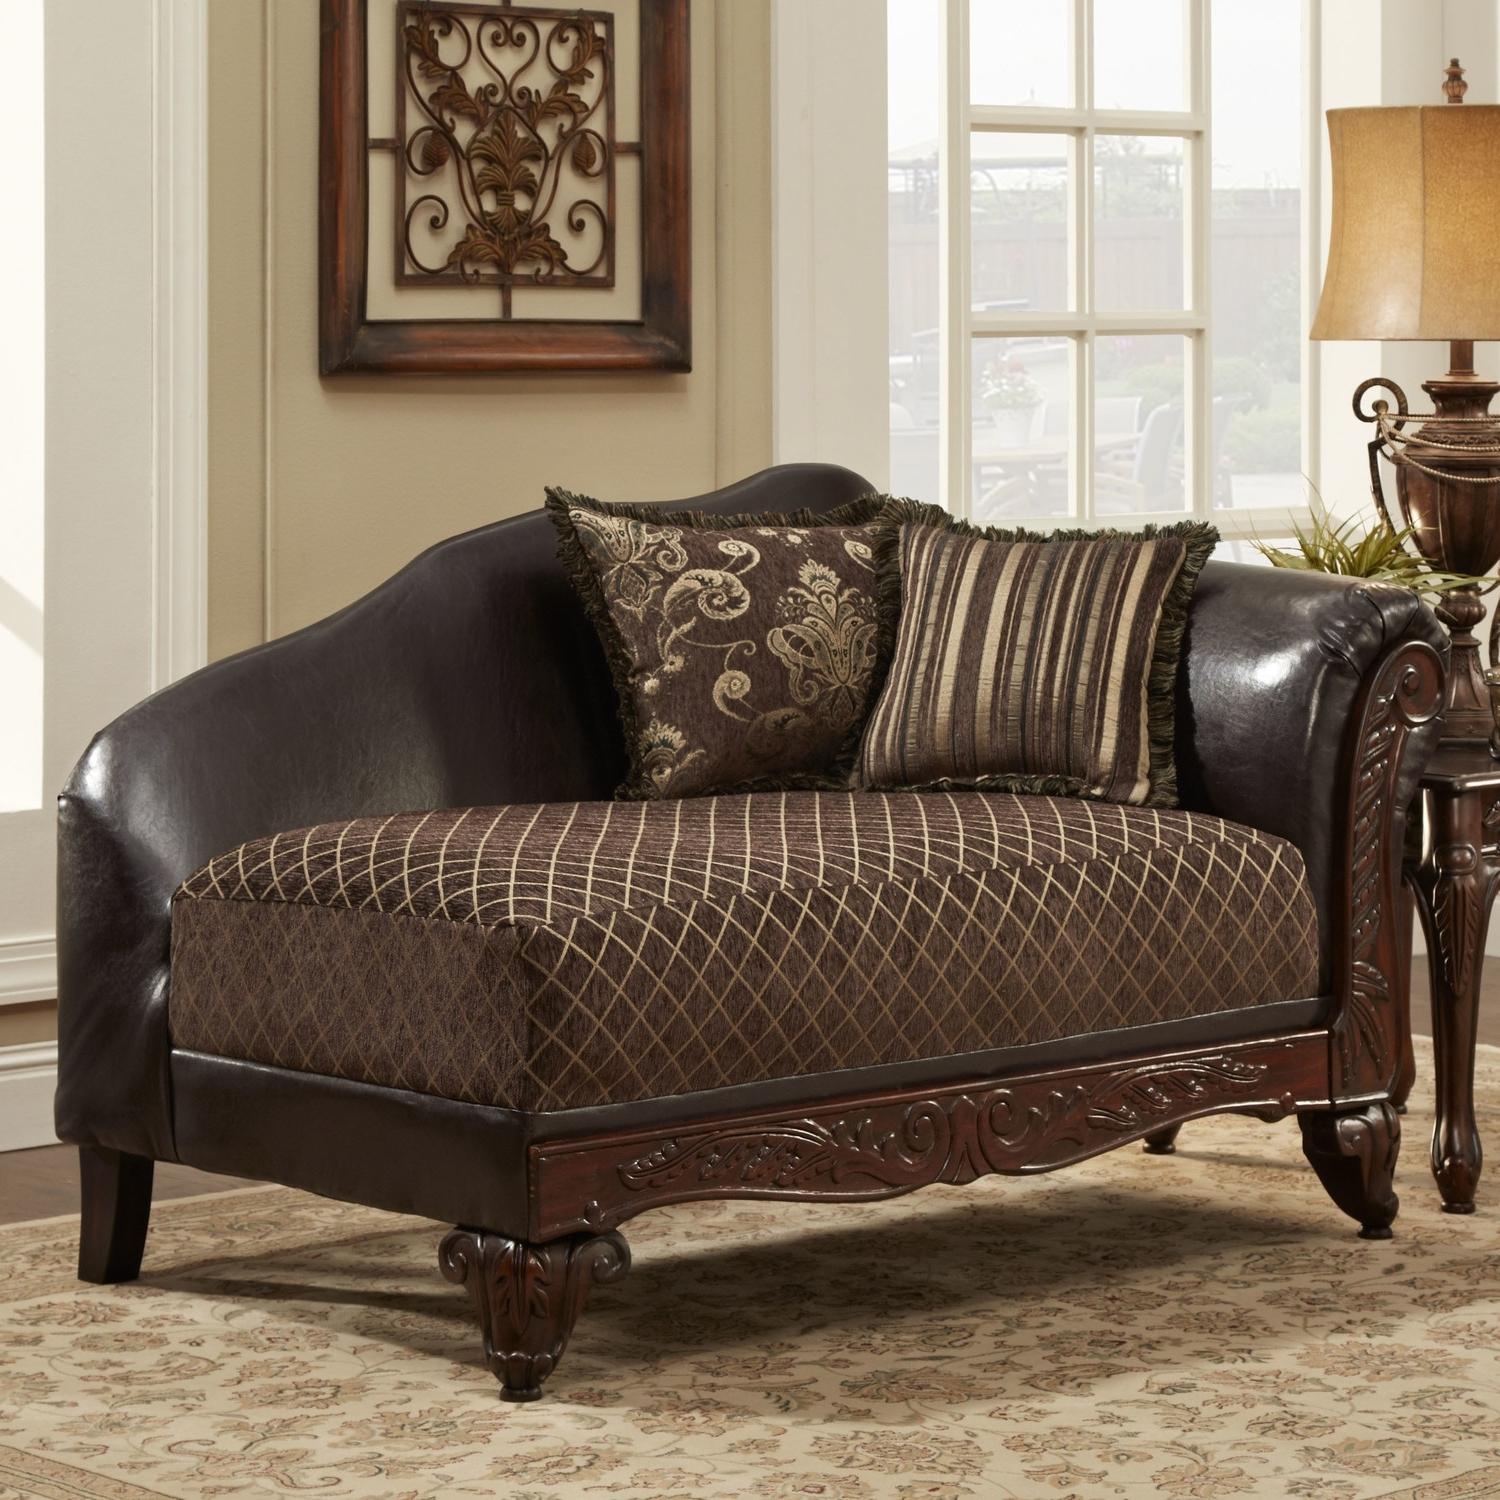 Newest Wonderful Brown Leather Chaise Lounge With Traditional Chaise In Brown Leather Chaises (View 11 of 15)